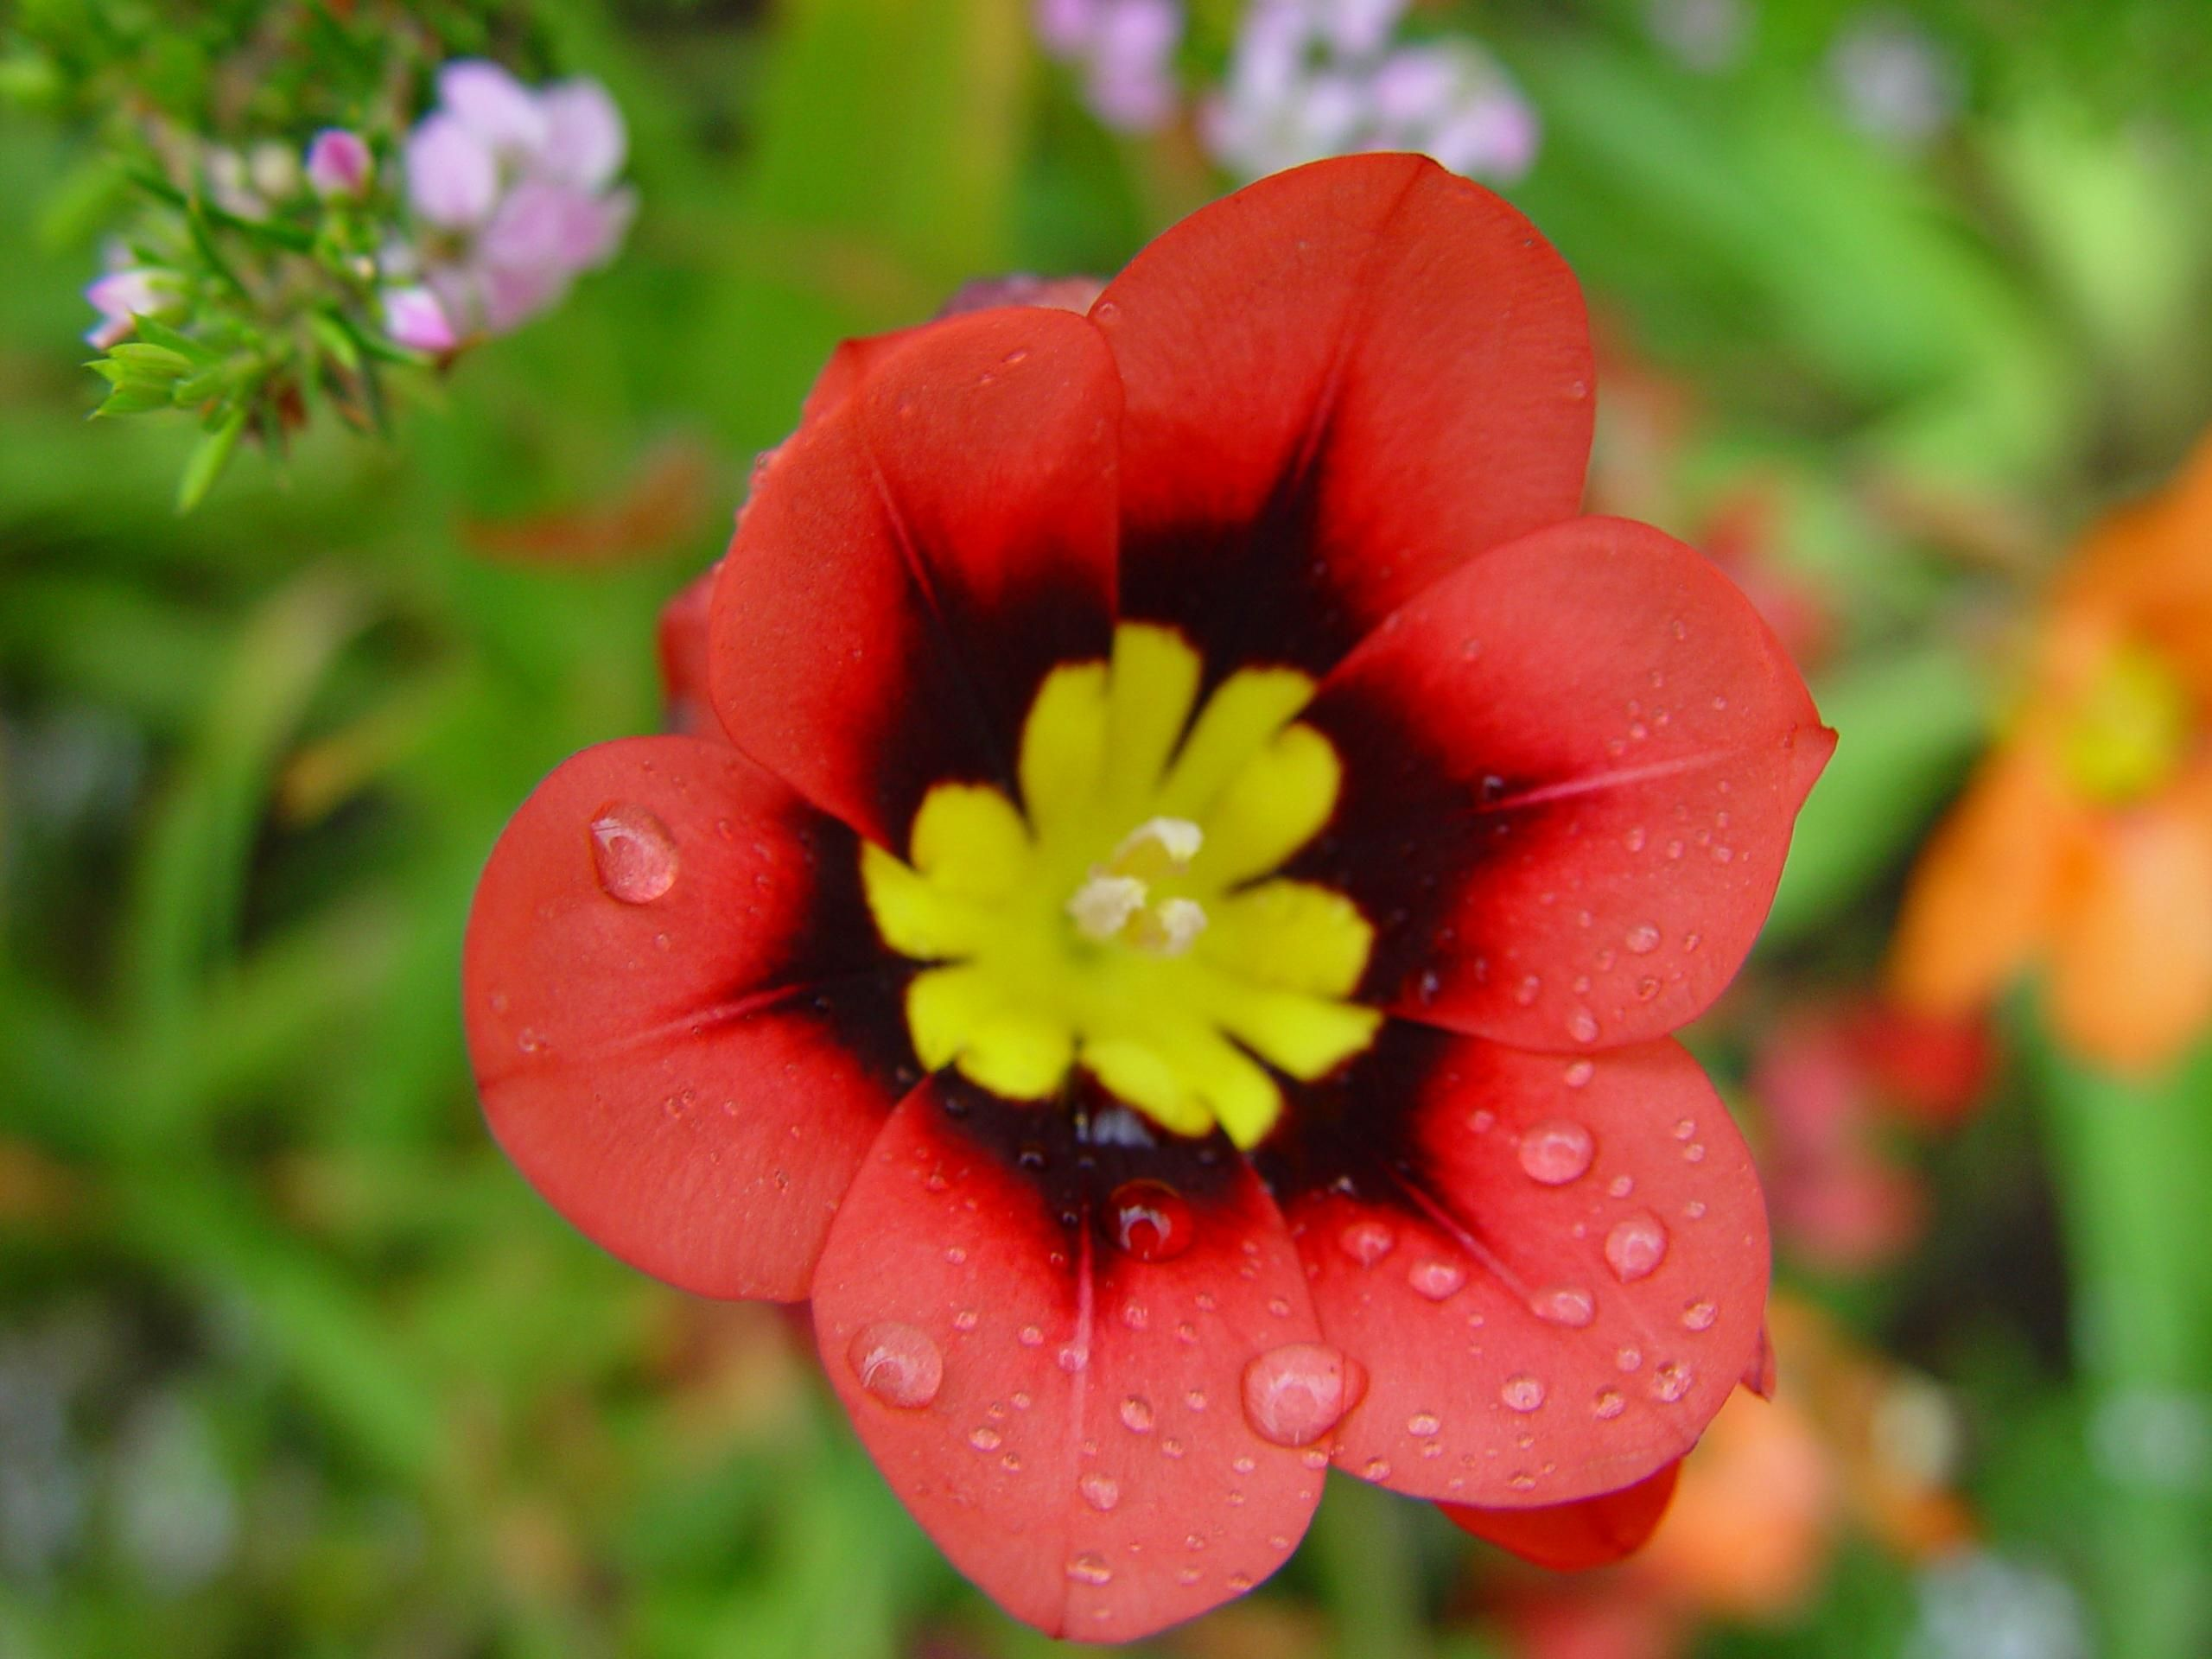 Free picture raindrops red yellow flower raindrops red yellow flower mightylinksfo